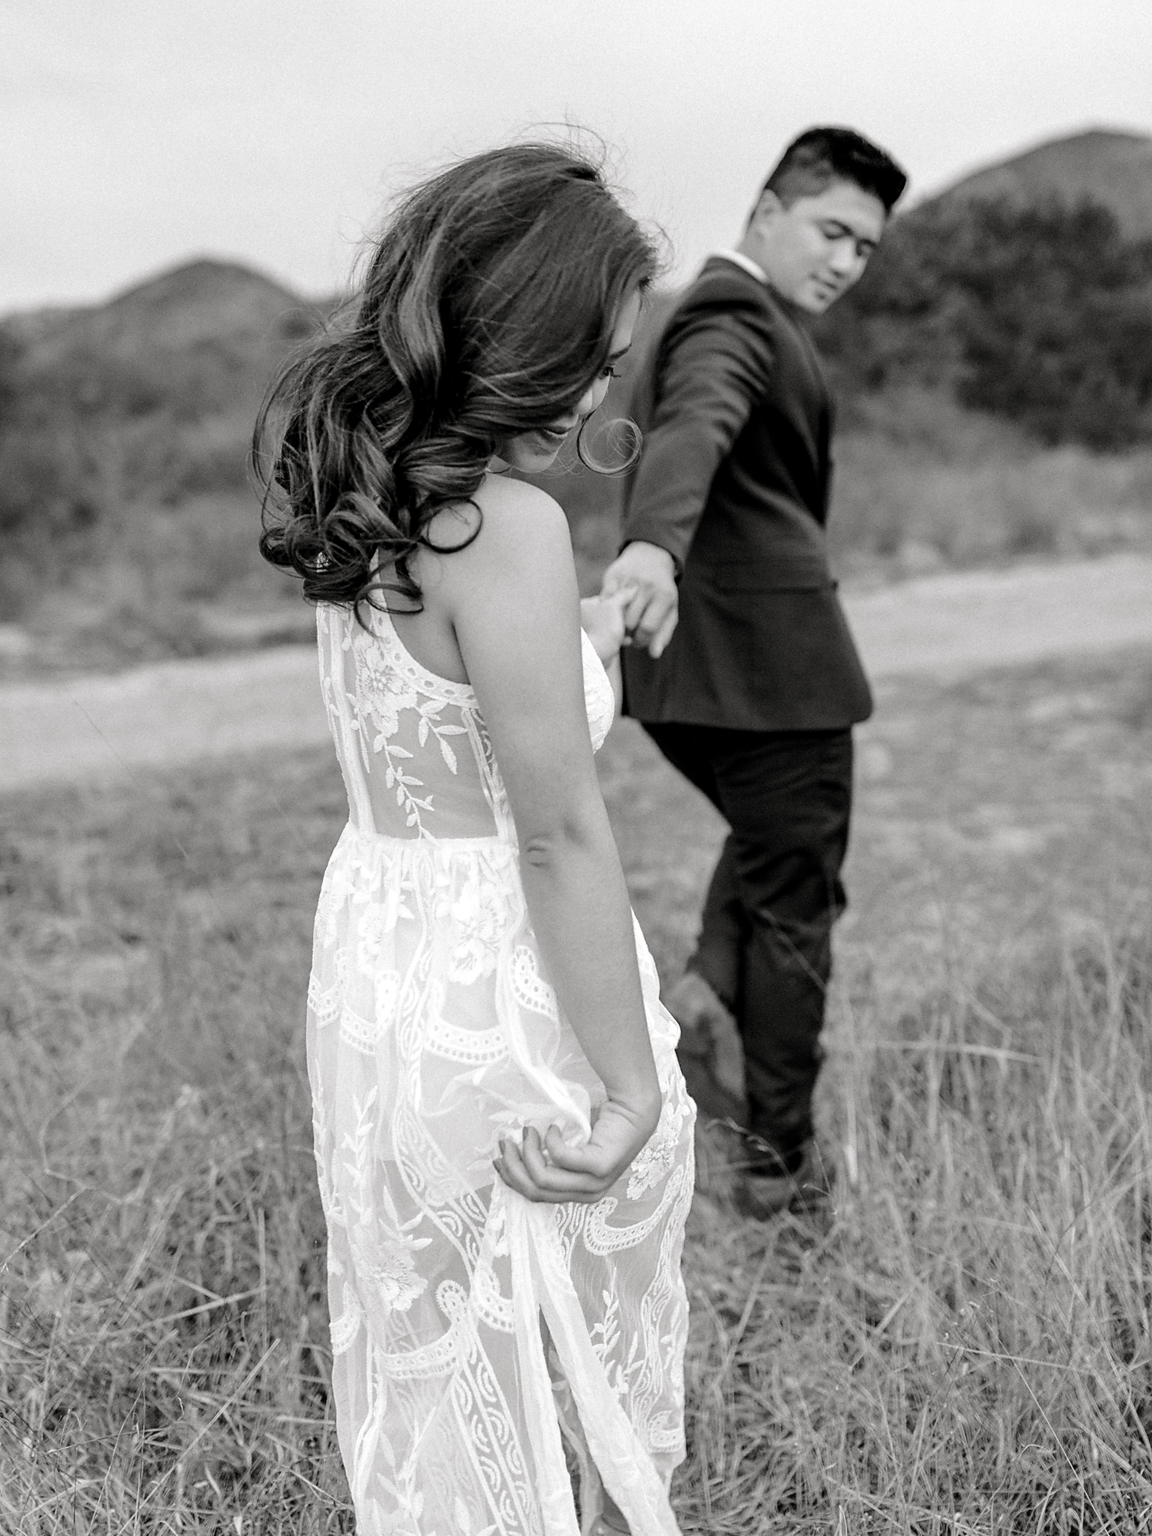 Babsie-Ly-Photography-Jenelle-Joshua-Engagement-Iron-Mountain-San-Diego-002